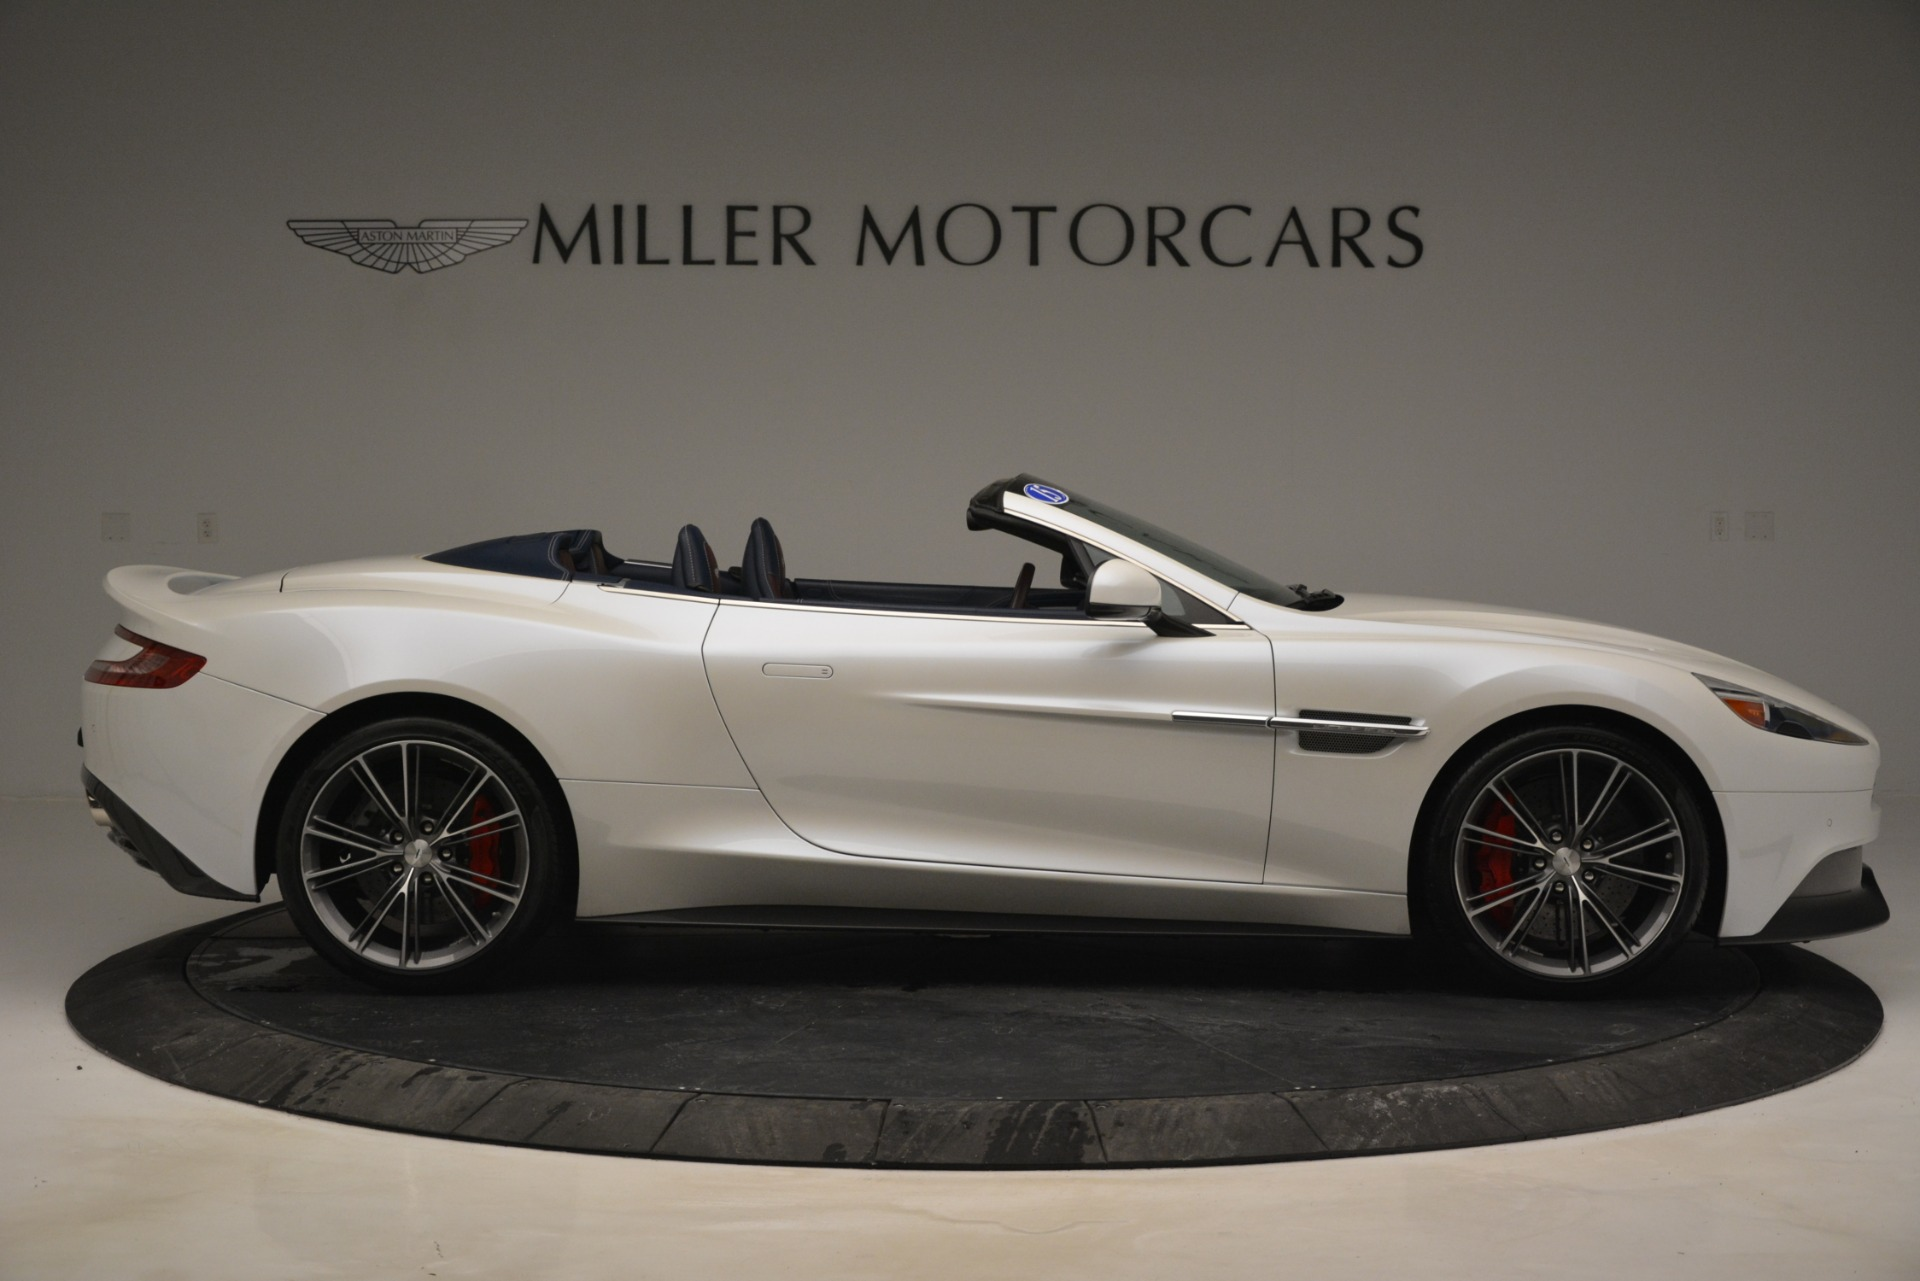 Used 2015 Aston Martin Vanquish Convertible For Sale In Westport, CT 2982_p9